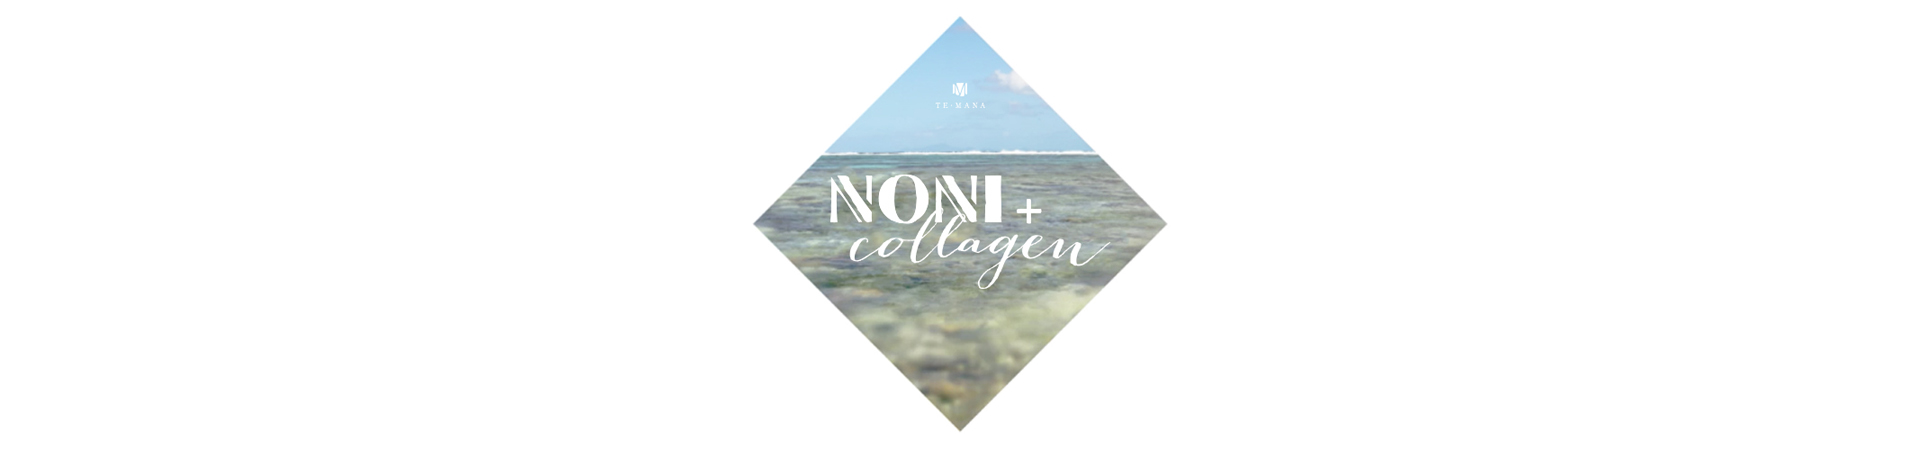 Noni + Collagen Video